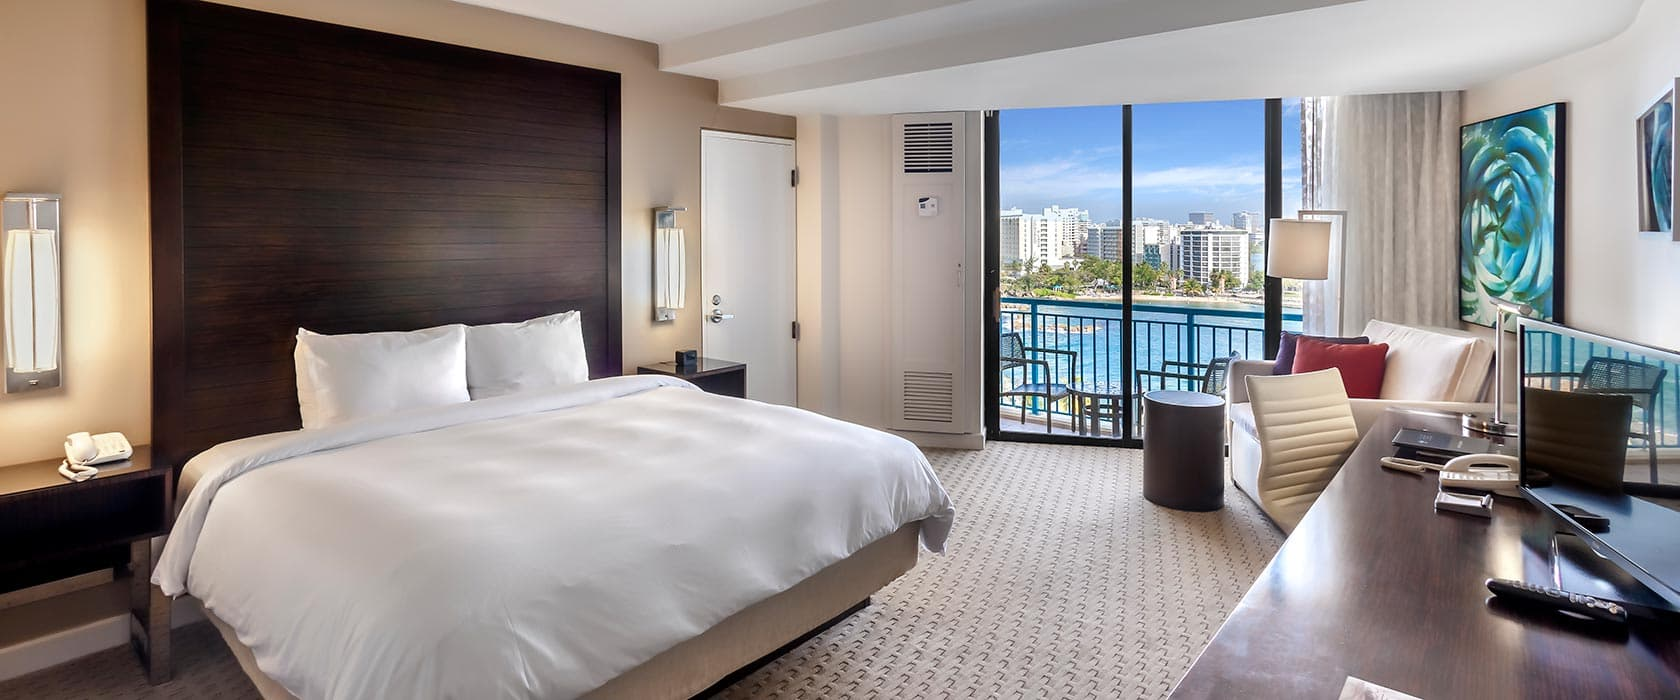 Guest Rooms Caribe Hilton San Juan Accommodations